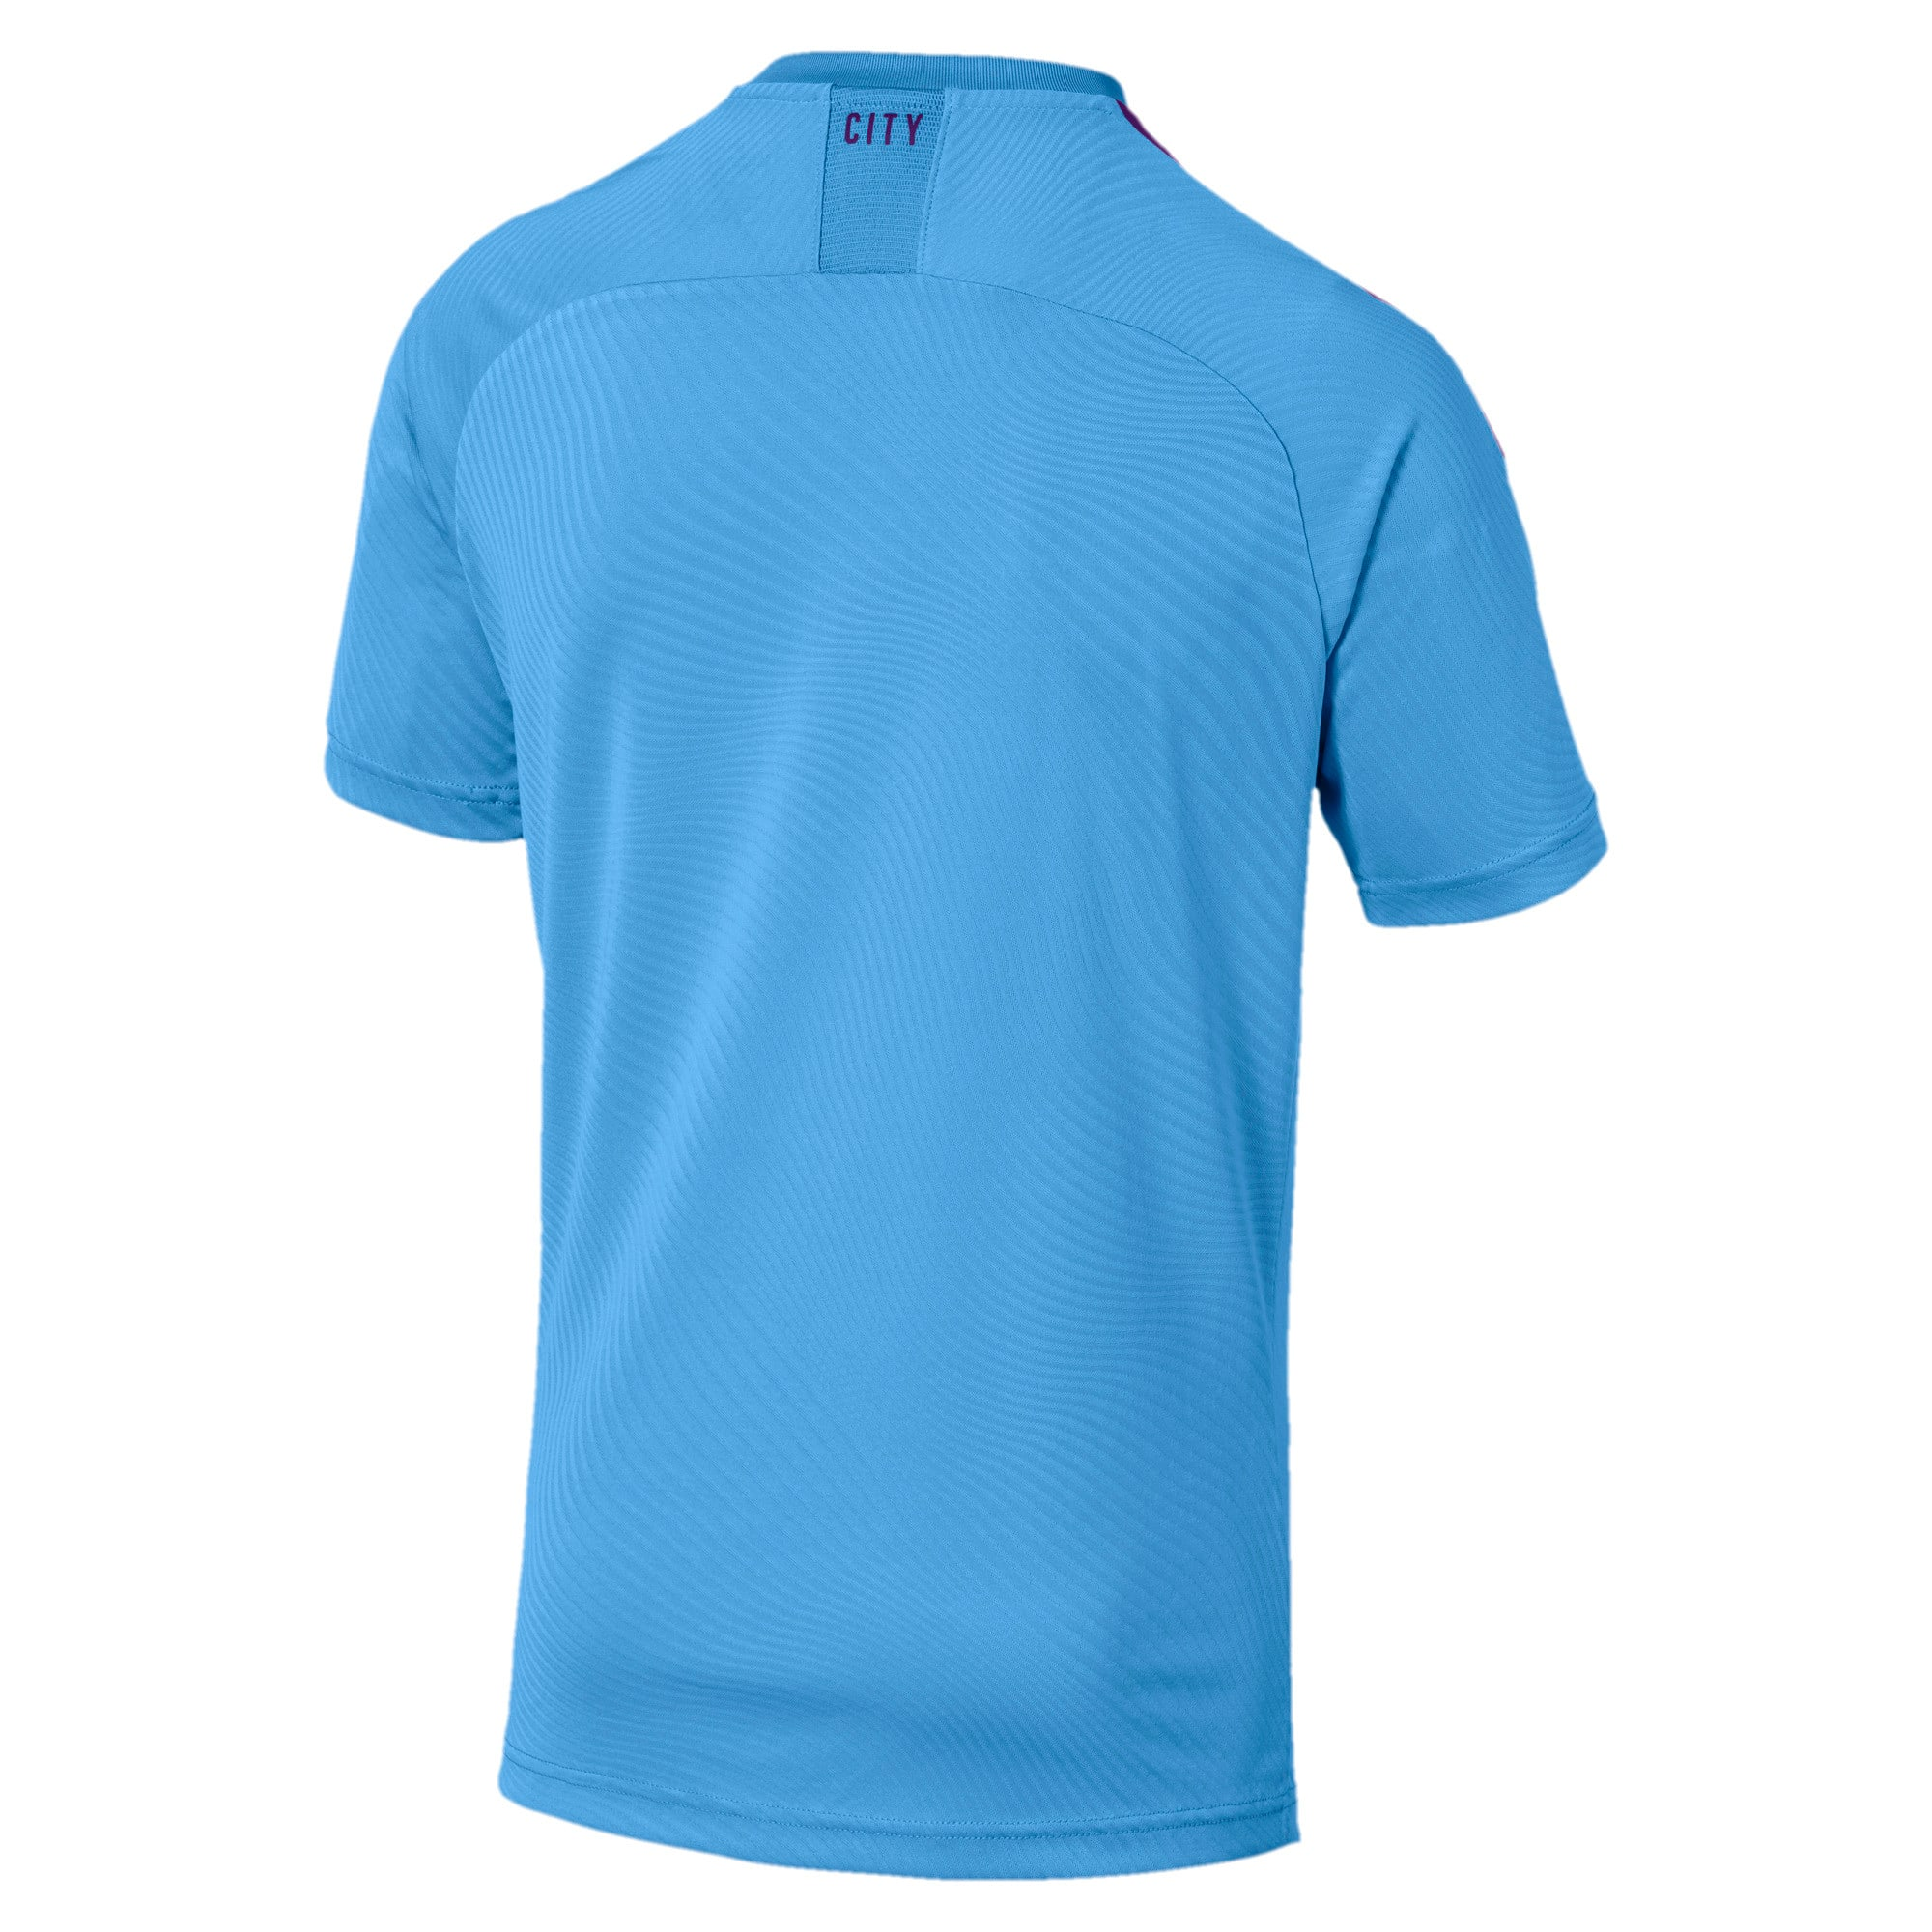 Thumbnail 2 of Manchester City FC Men's Home Replica Jersey, TeamLightBlue-TillandsiaPurp, medium